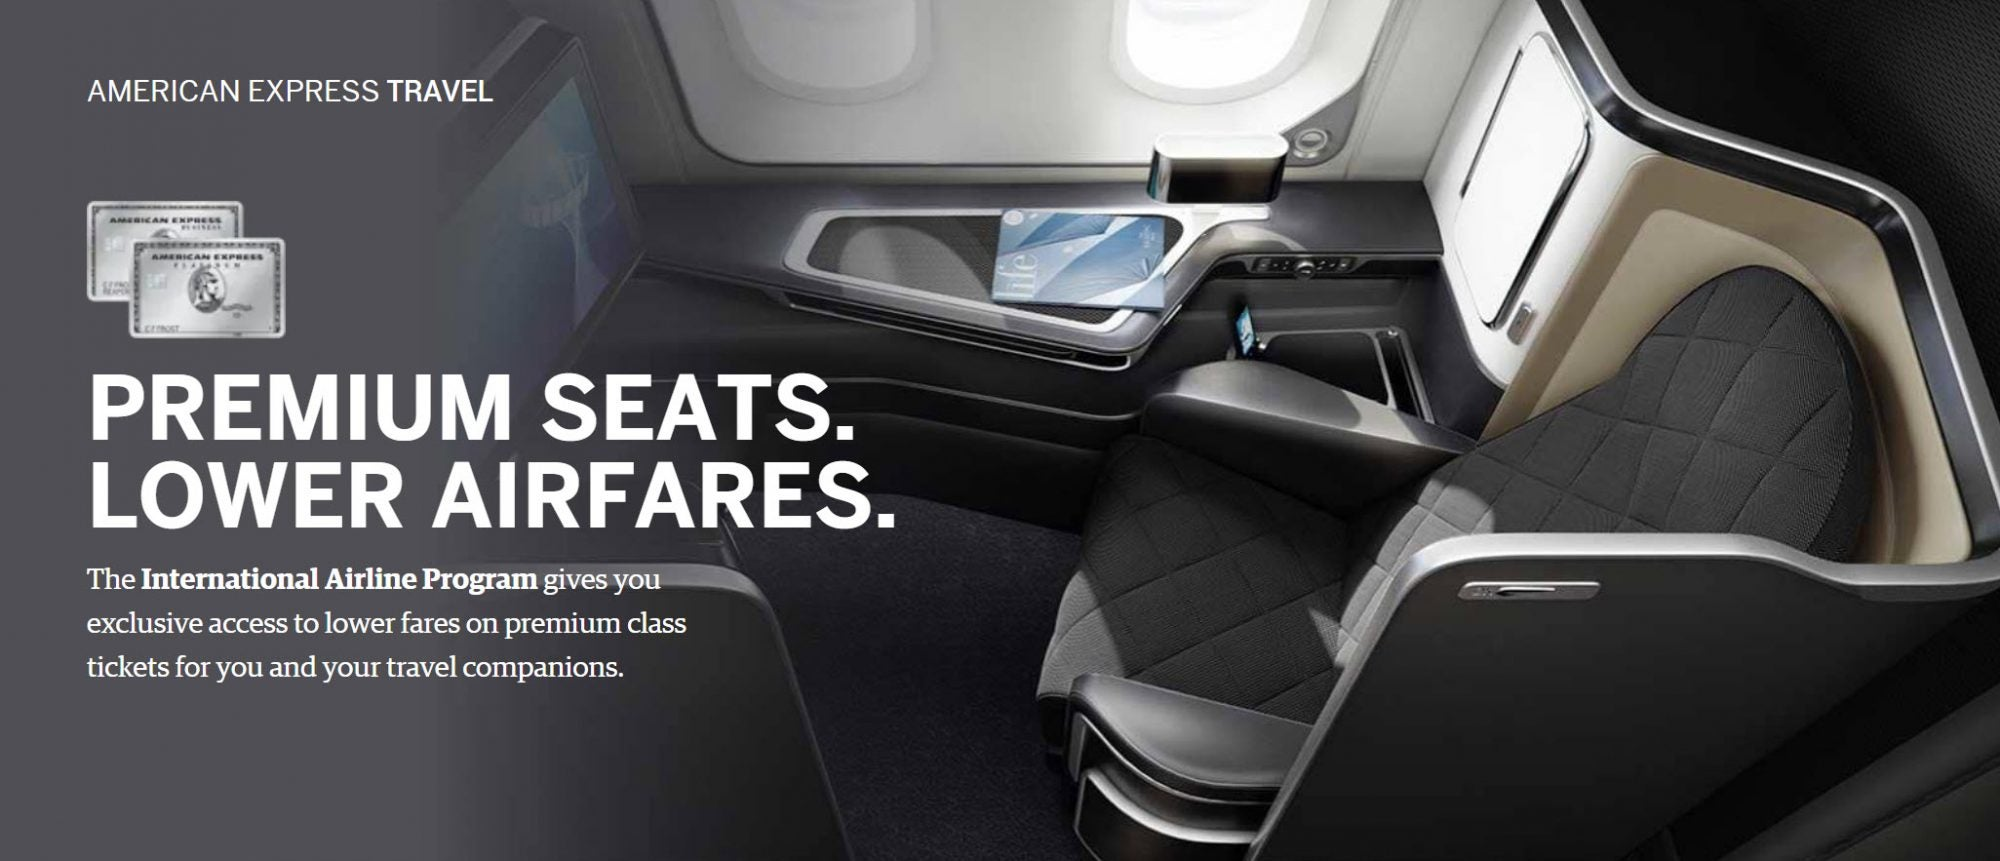 Easier Than Ever to Receive Discounts on First, Business, and Premium Economy Seats Through American Express!